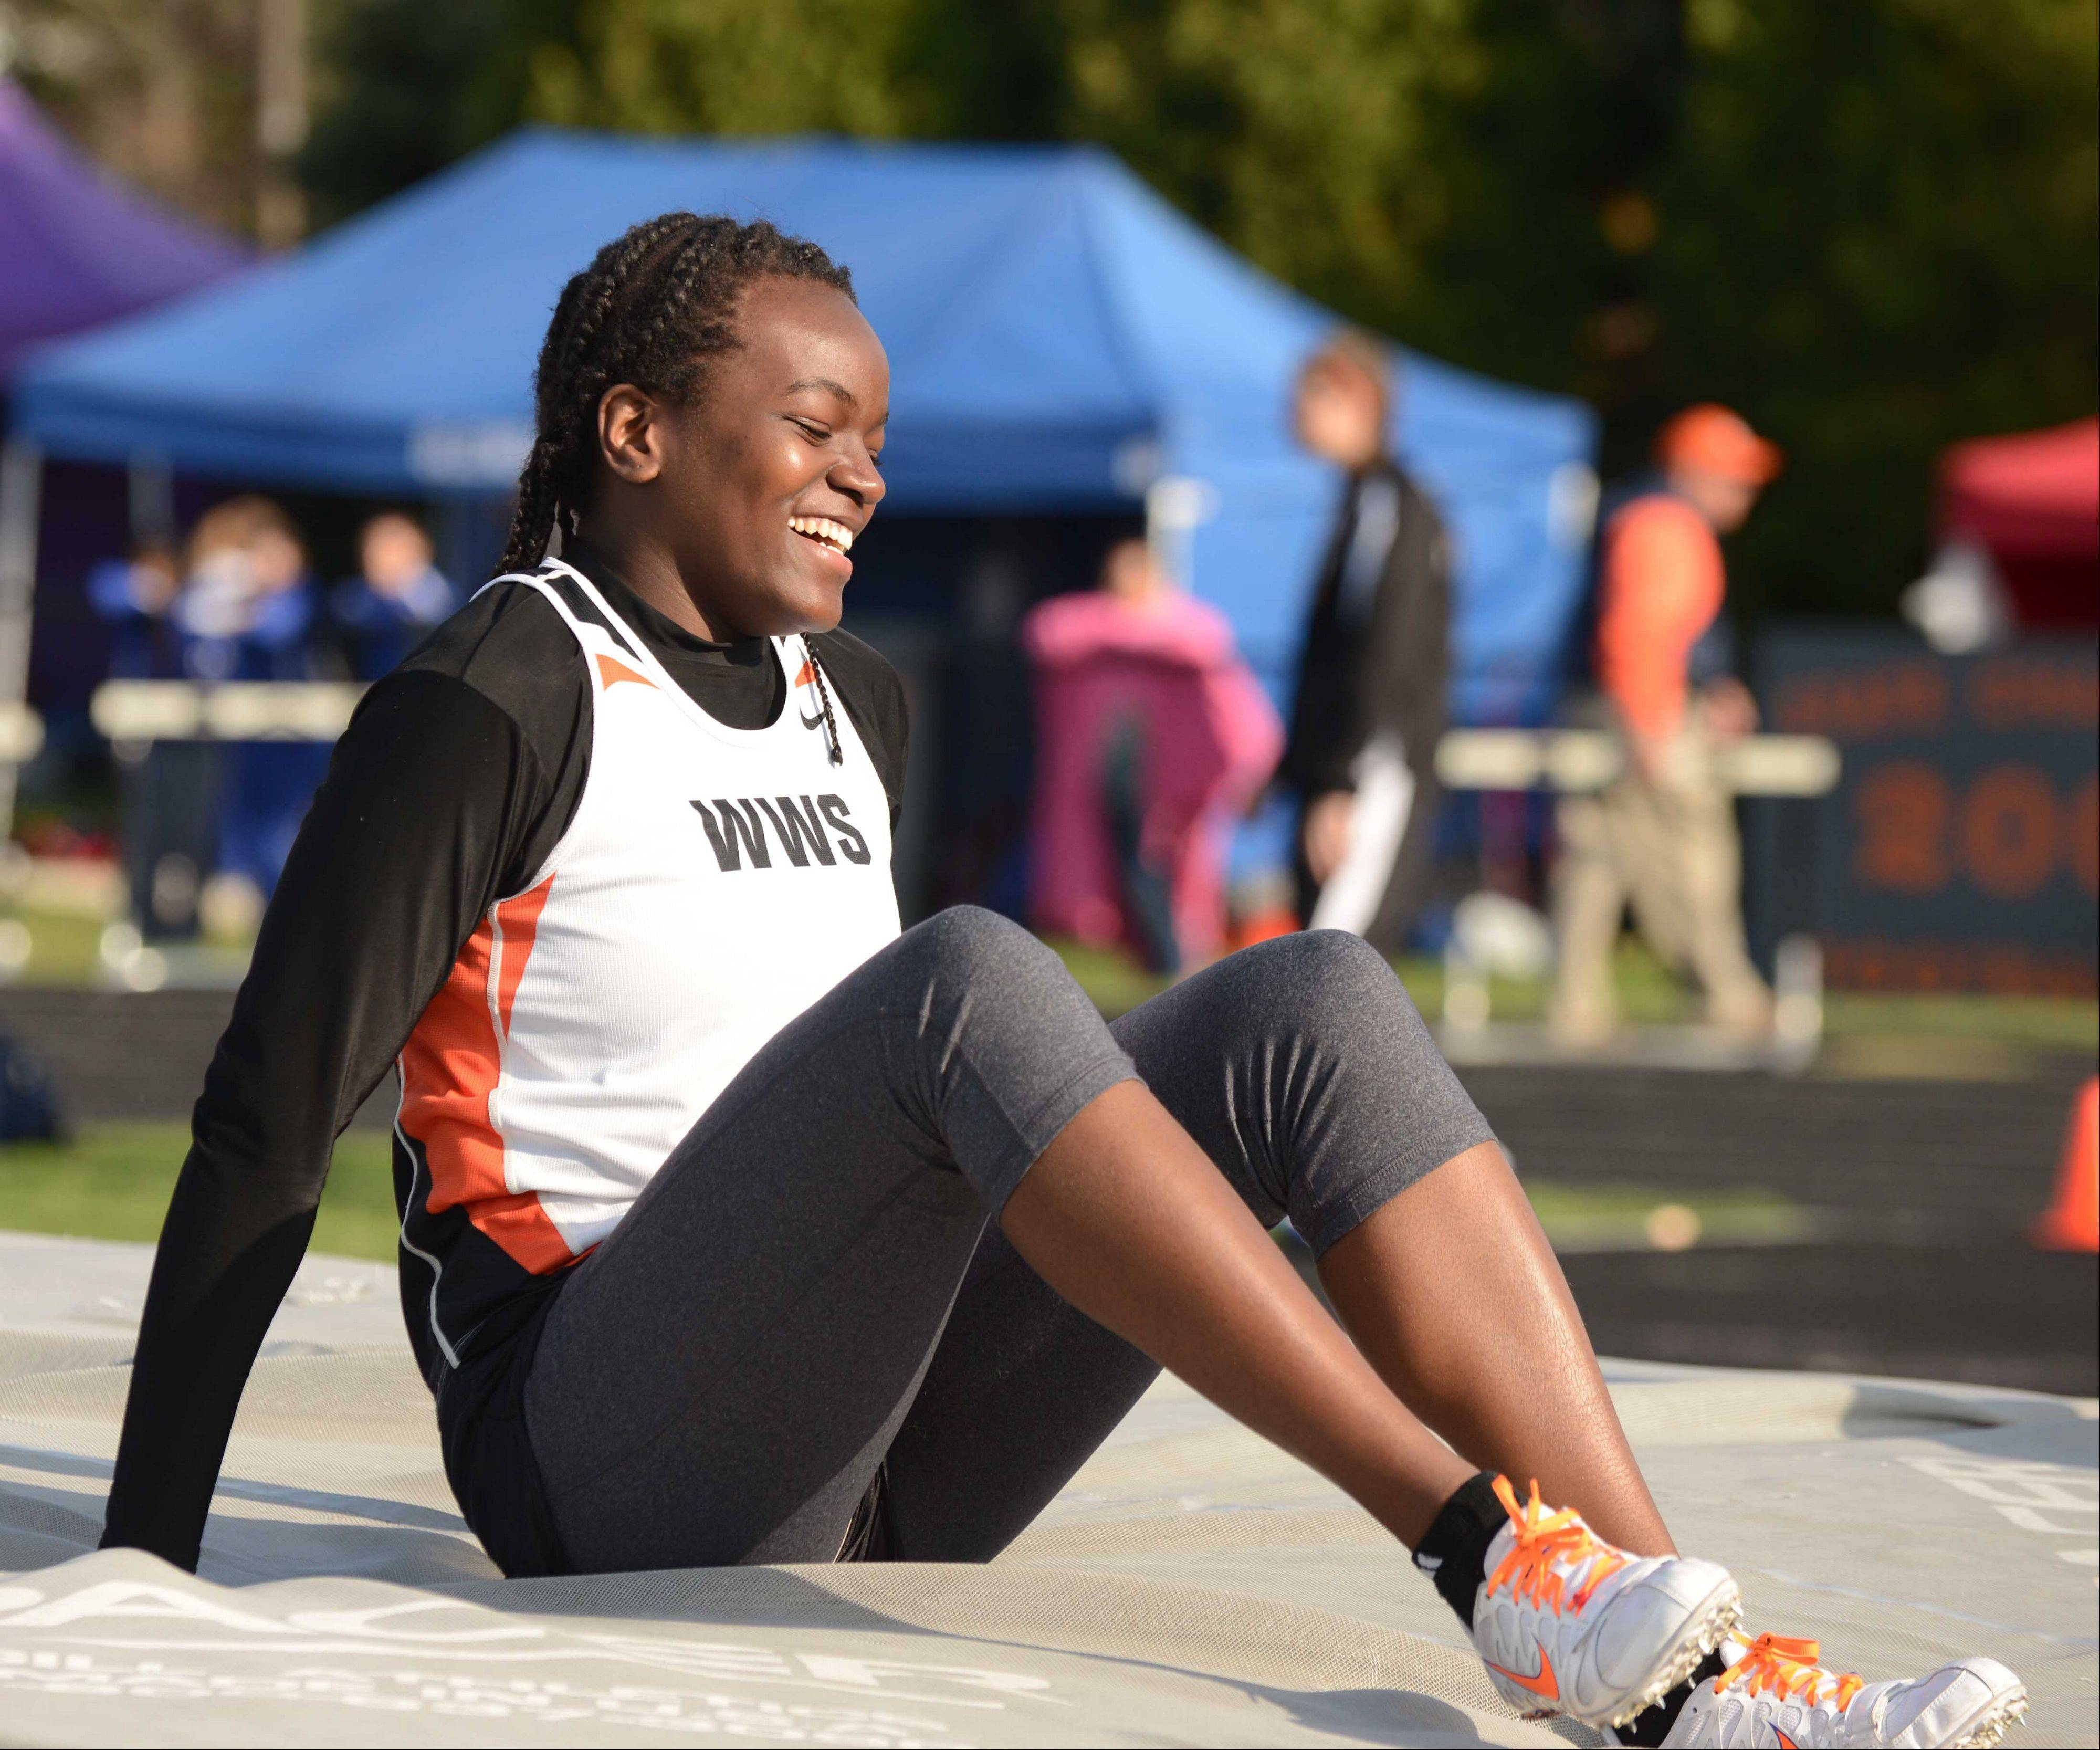 Teso Coker of Wheaton Warrenville South is all smiles after clearing the bar at 5.1 during the Wheaton Warrenville South girls track meet Friday.